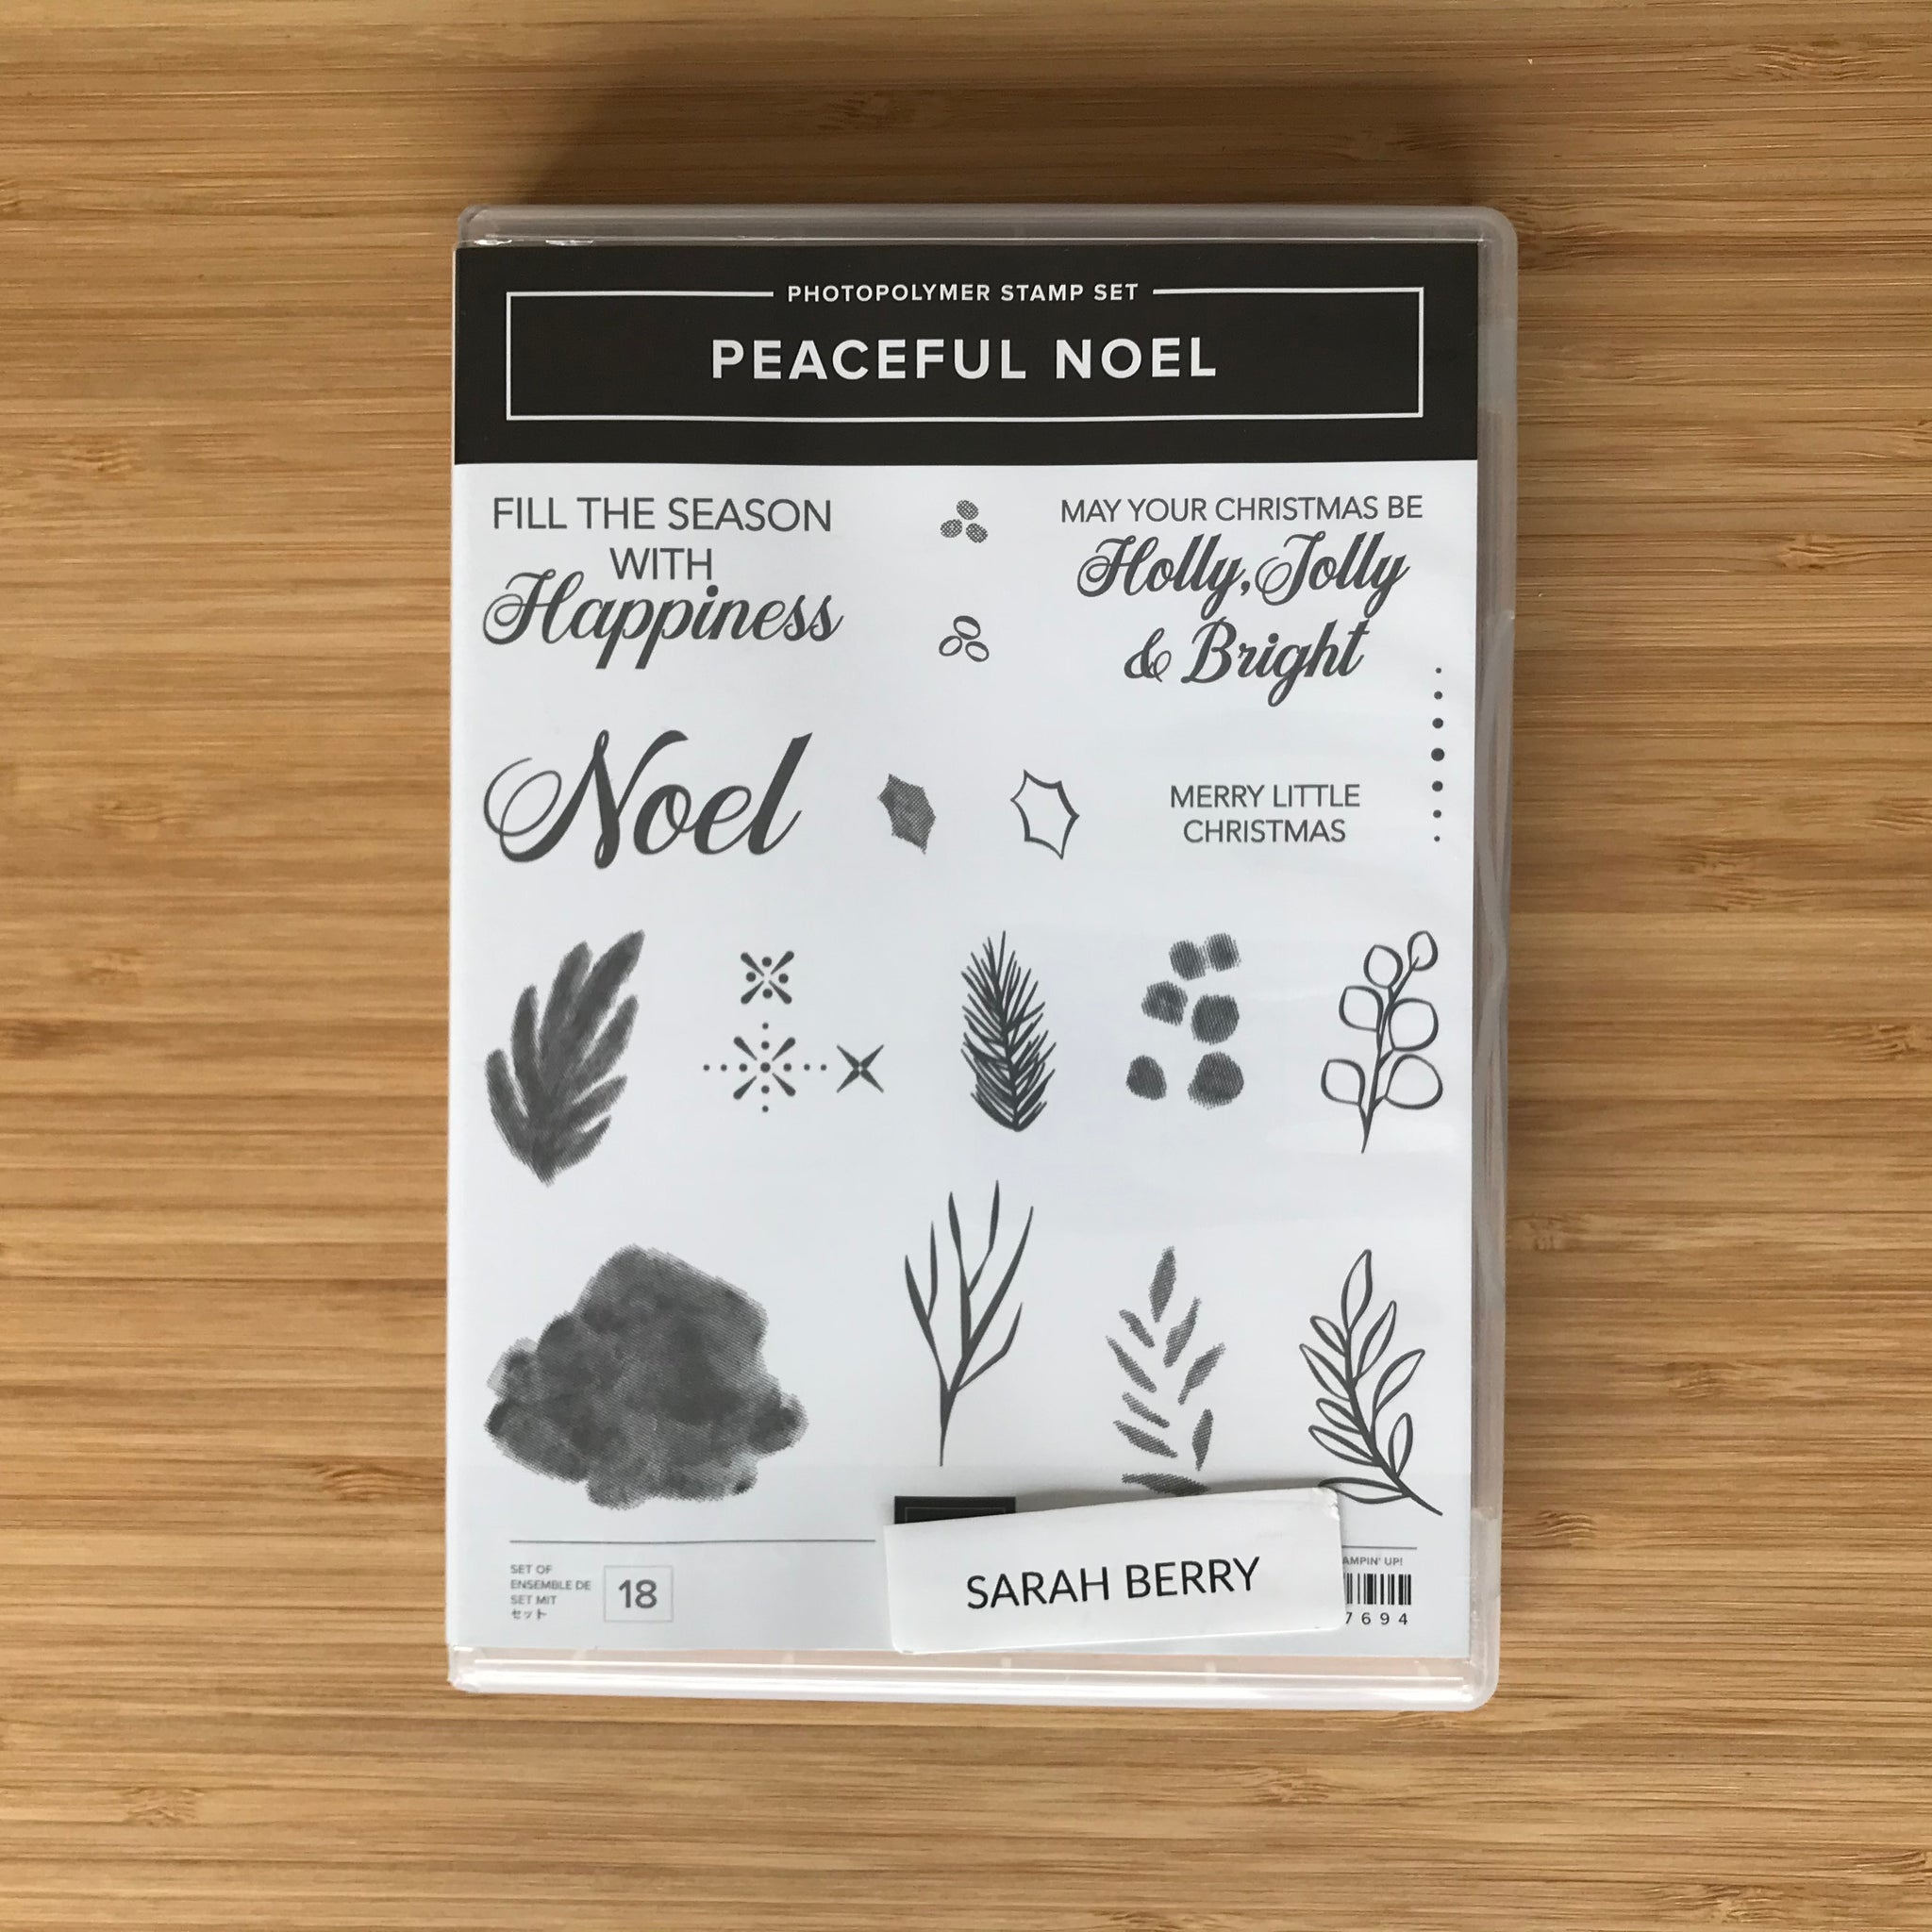 Peaceful Noel | Retired Photopolymer Stamp Set  | Stampin' Up!®